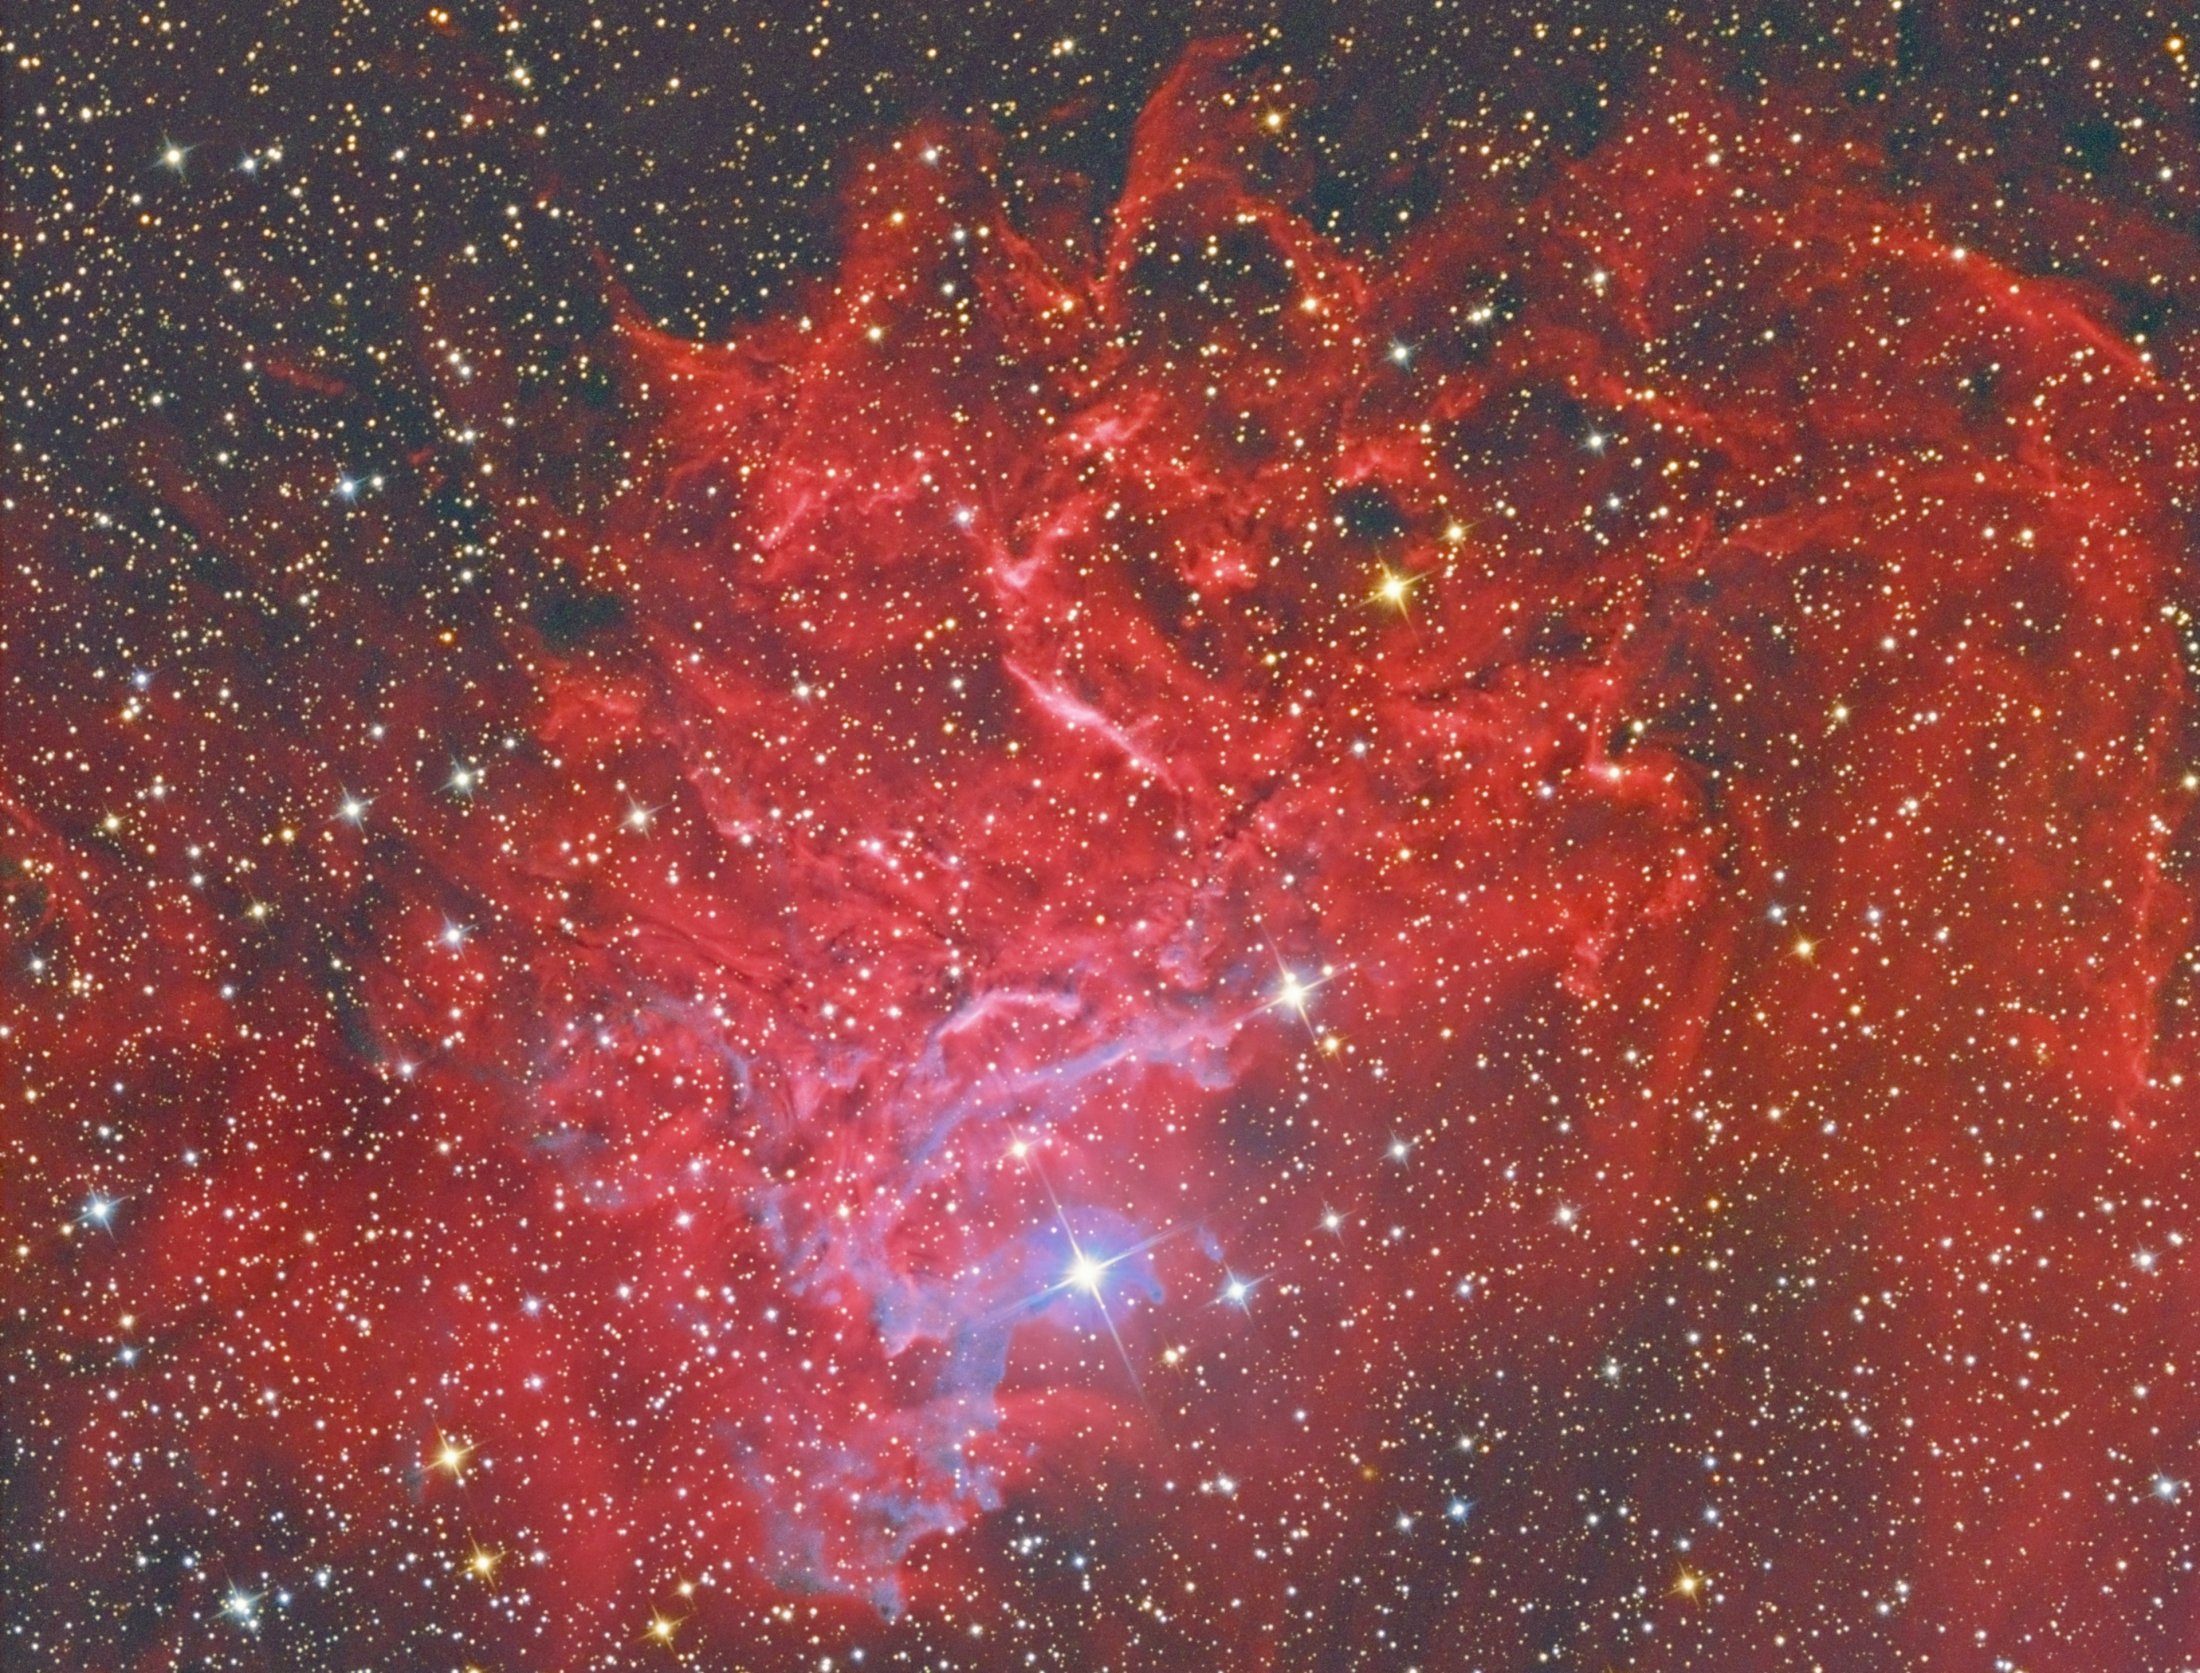 IC 405 Flaming Star Nebula